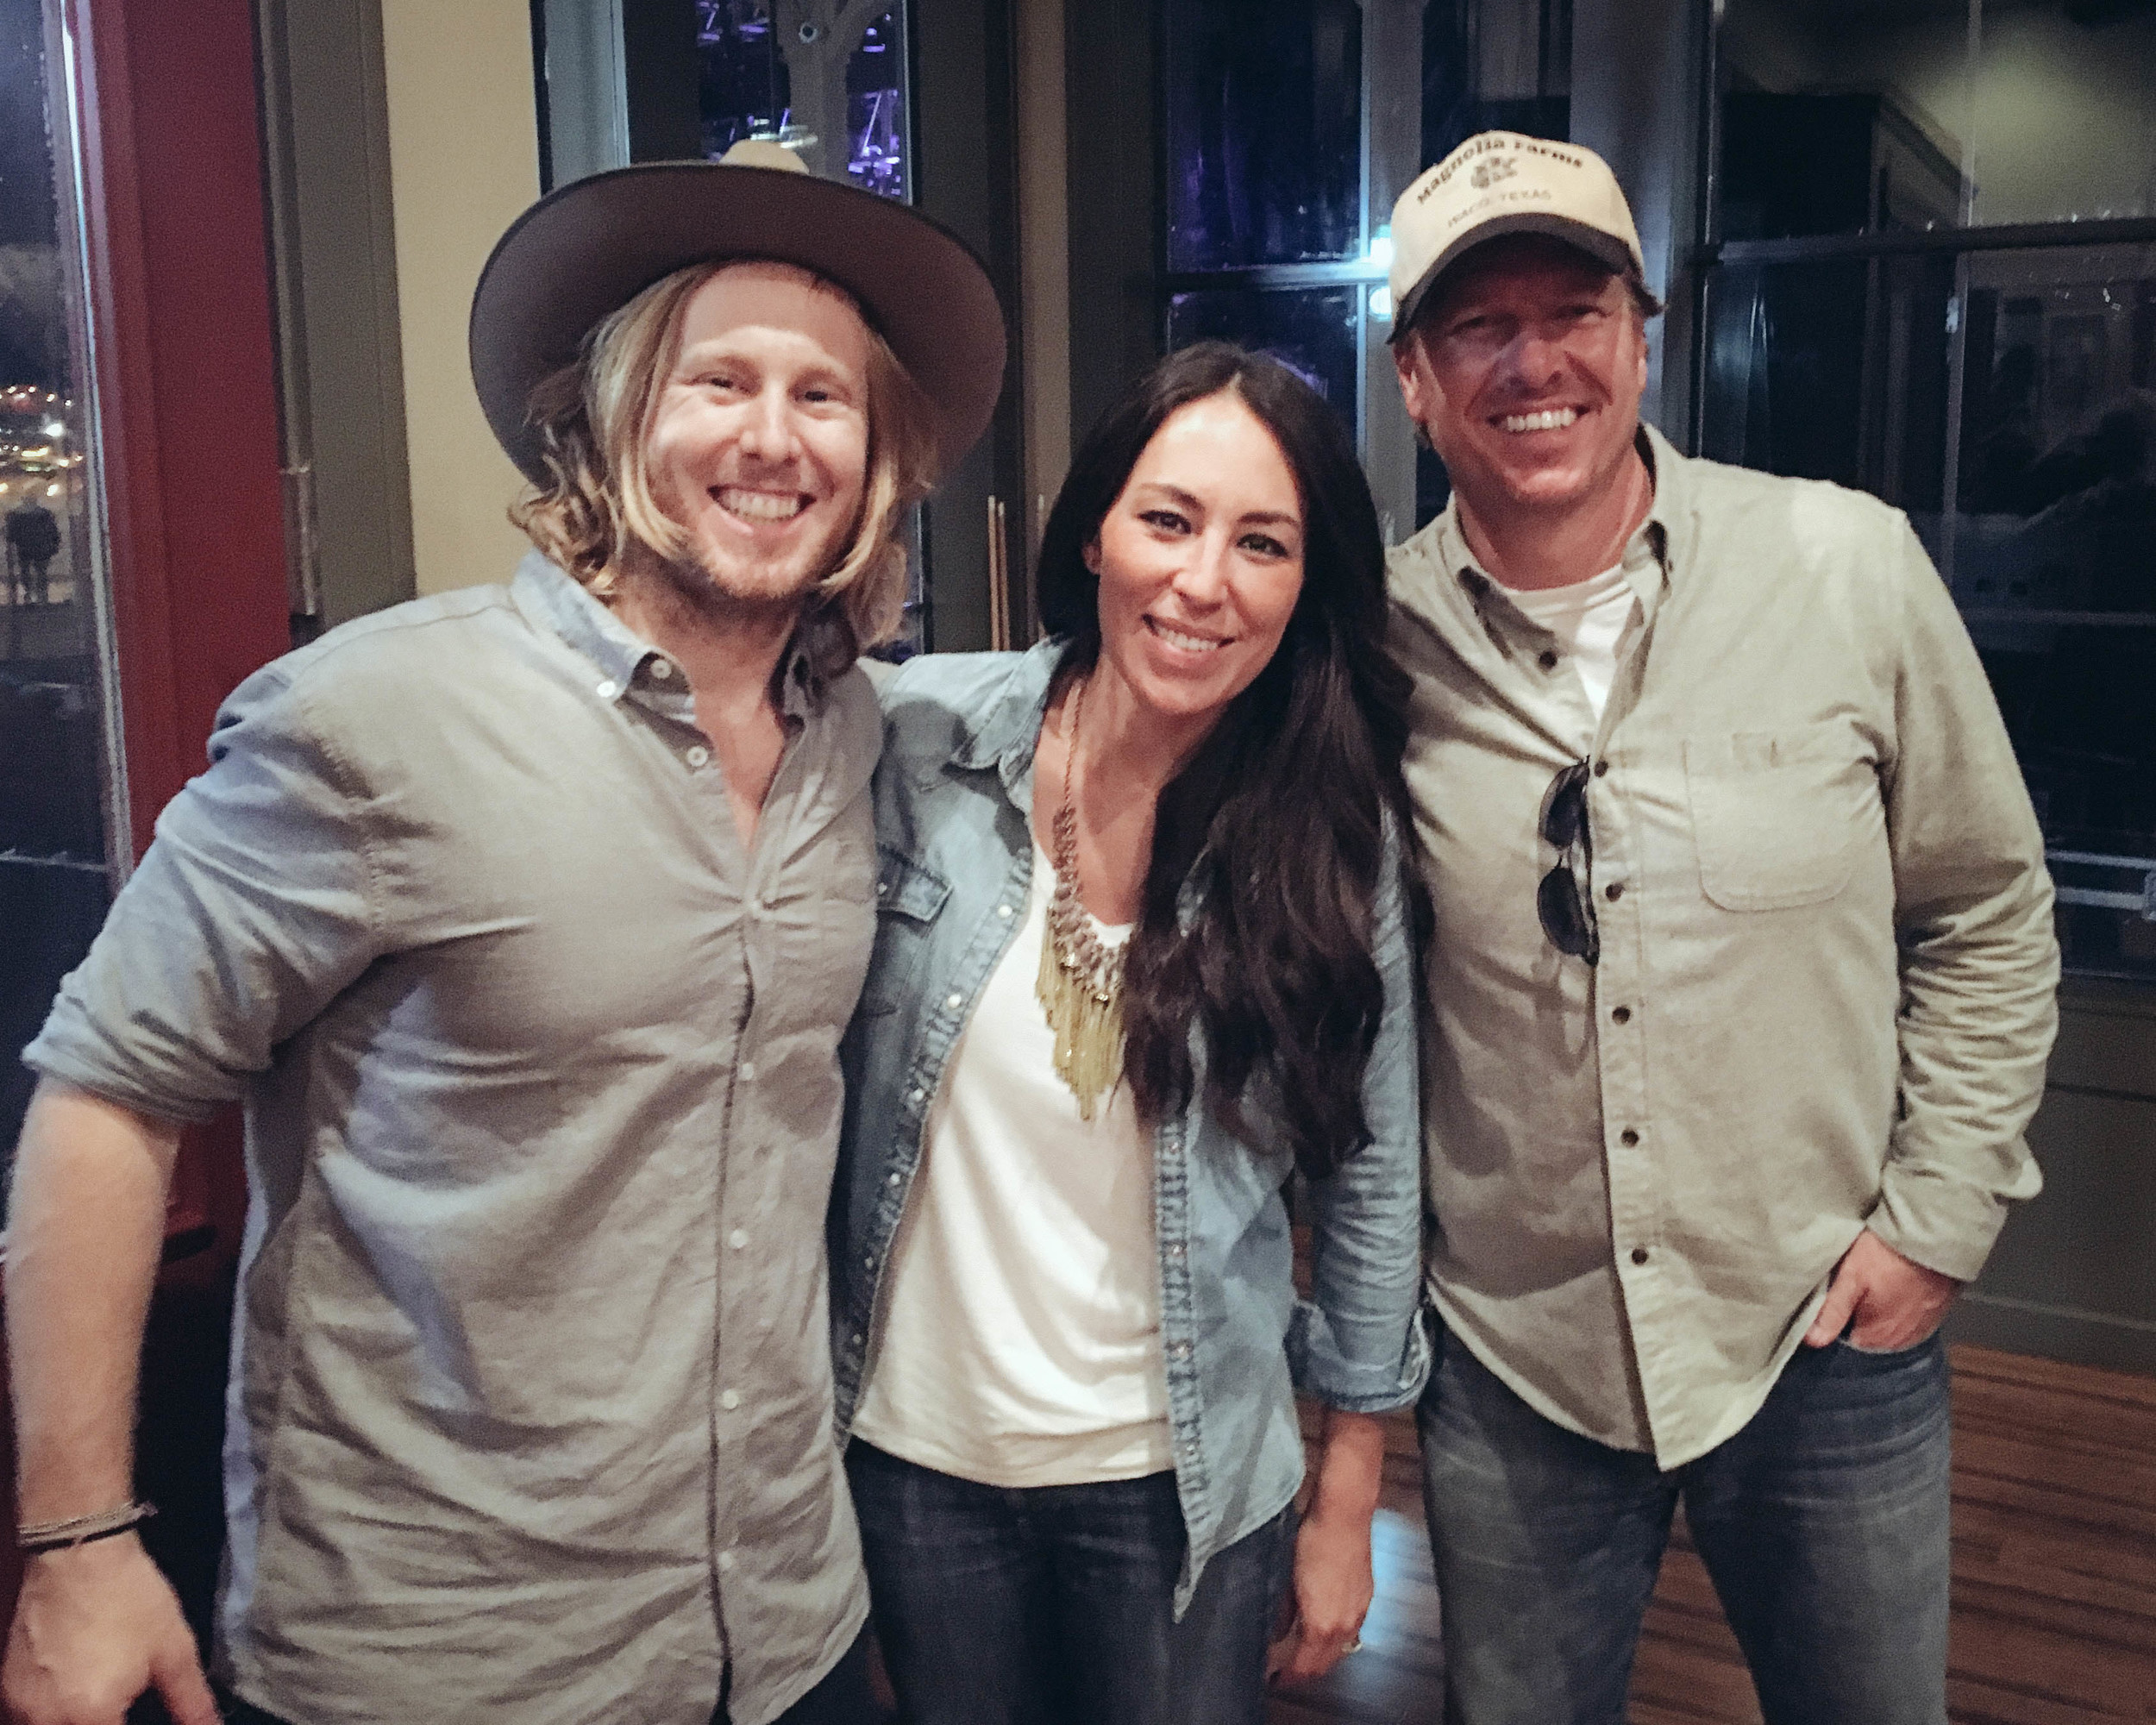 Chip & Joanna were backstage at Willy's Ranch. Loved chatting w/ them after we got done playing.